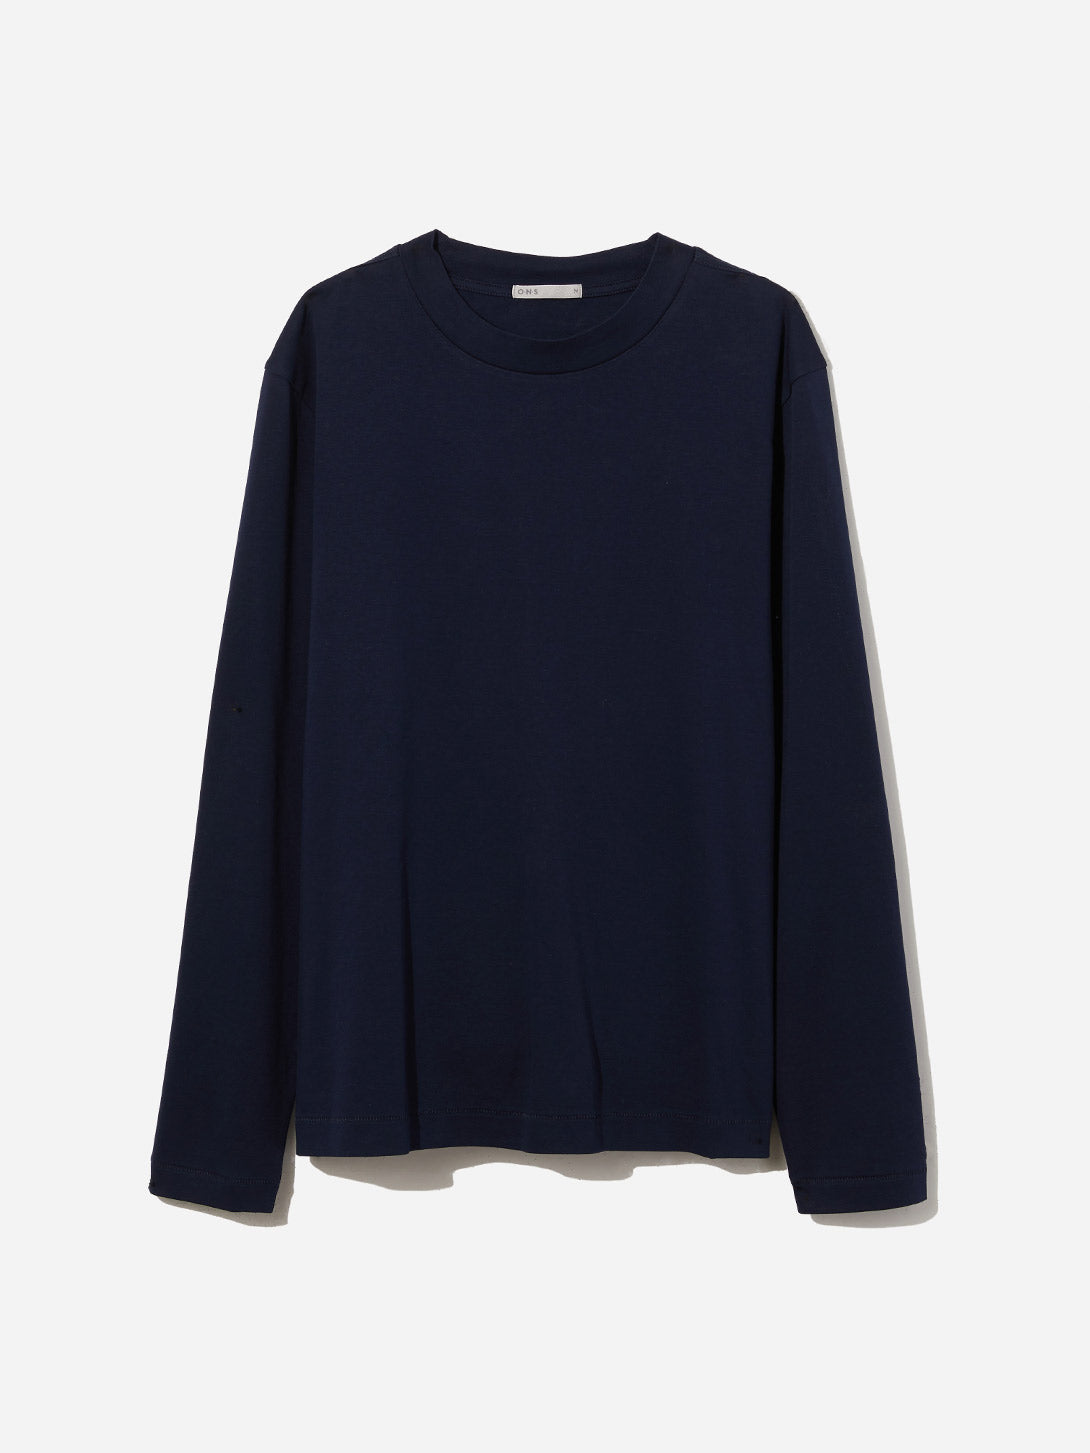 NAVY long sleeve tee mascot tee navy ons clothing